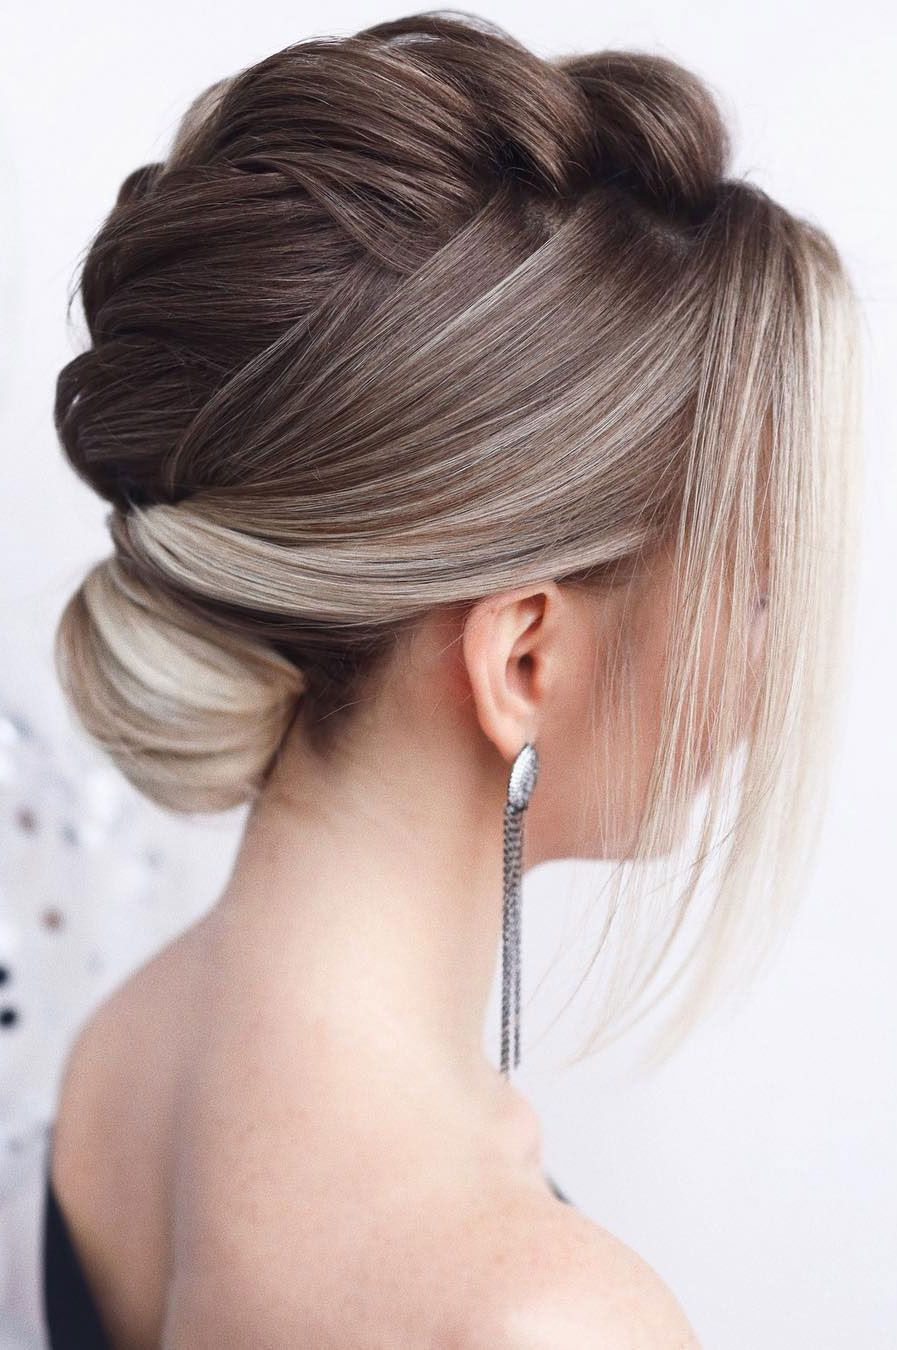 Gorgeous Super Chic Hairstyle That S Breathtaking Braids For Short Hair Short Hair Updo Thick Hair Styles